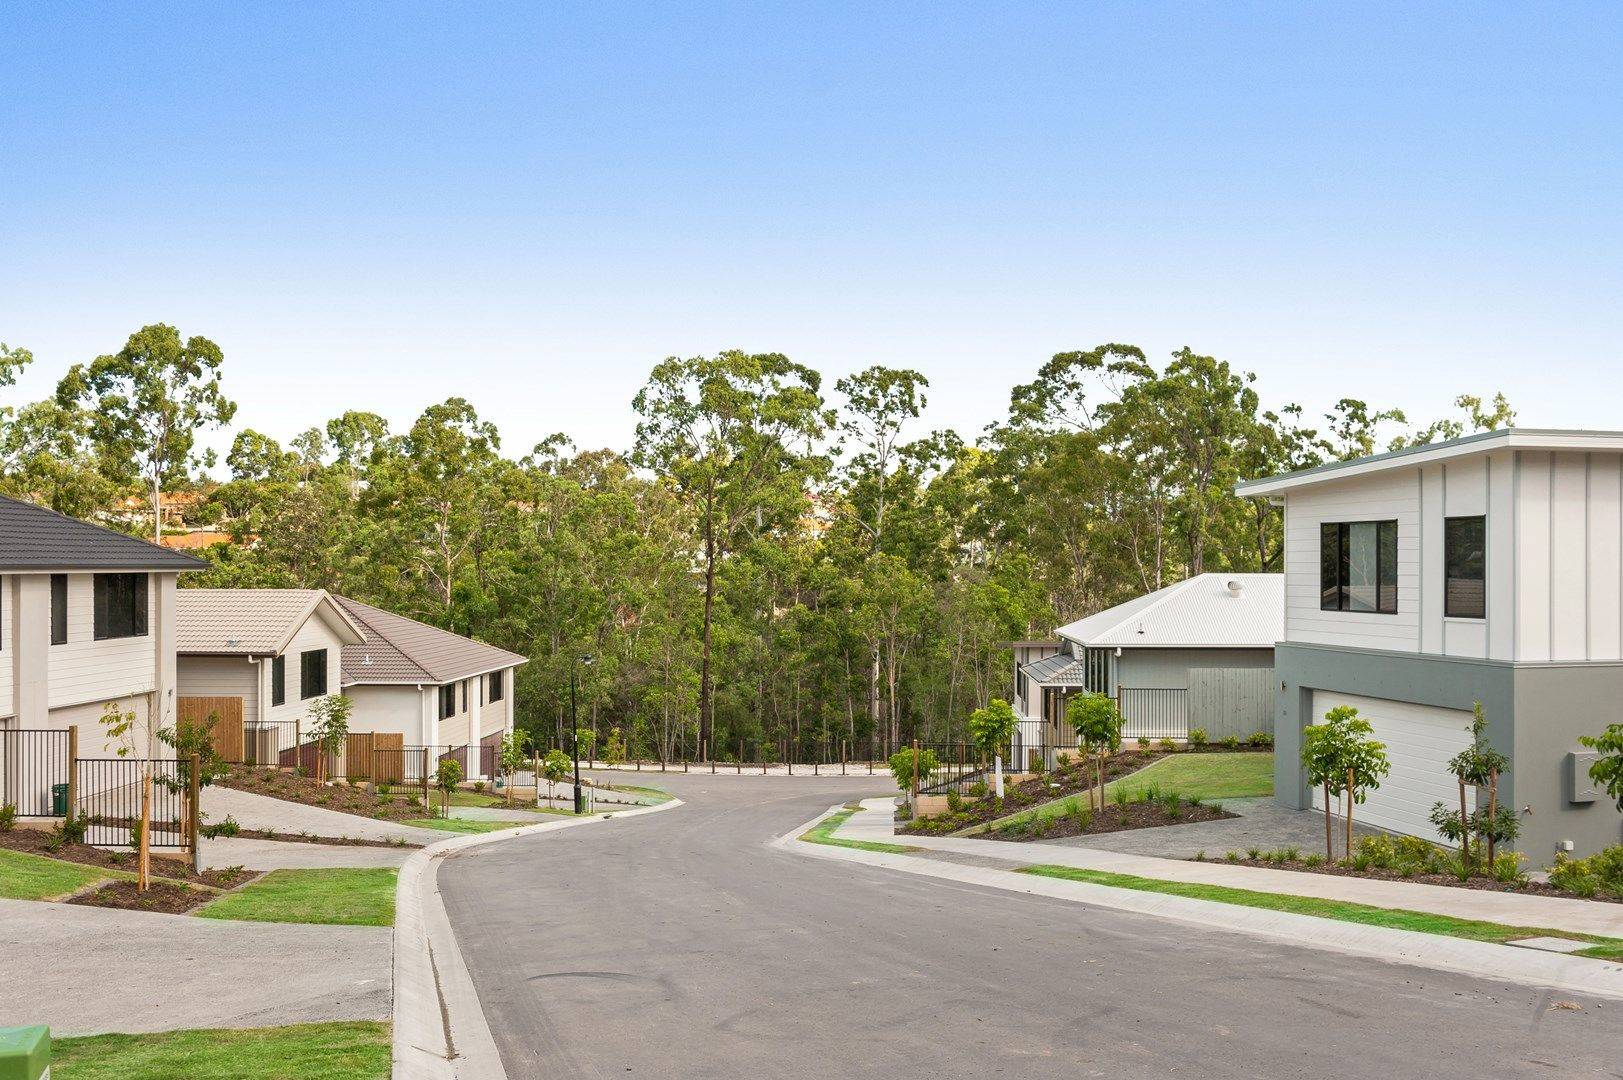 1853/21 Springfield Parkway, Springfield QLD 4300, Image 9